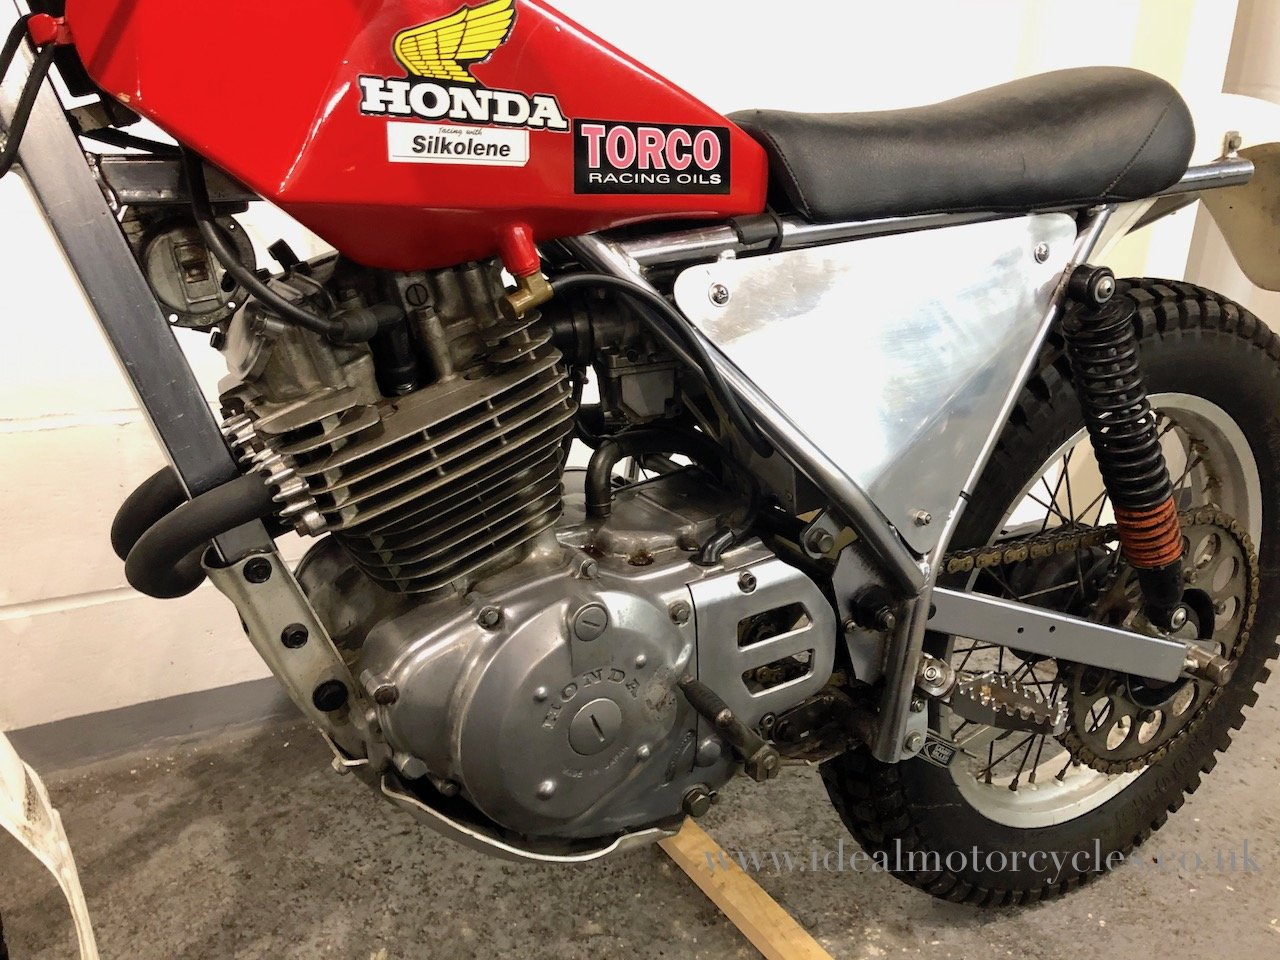 1980 Honda FRASER HT250 For Sale (picture 2 of 6)